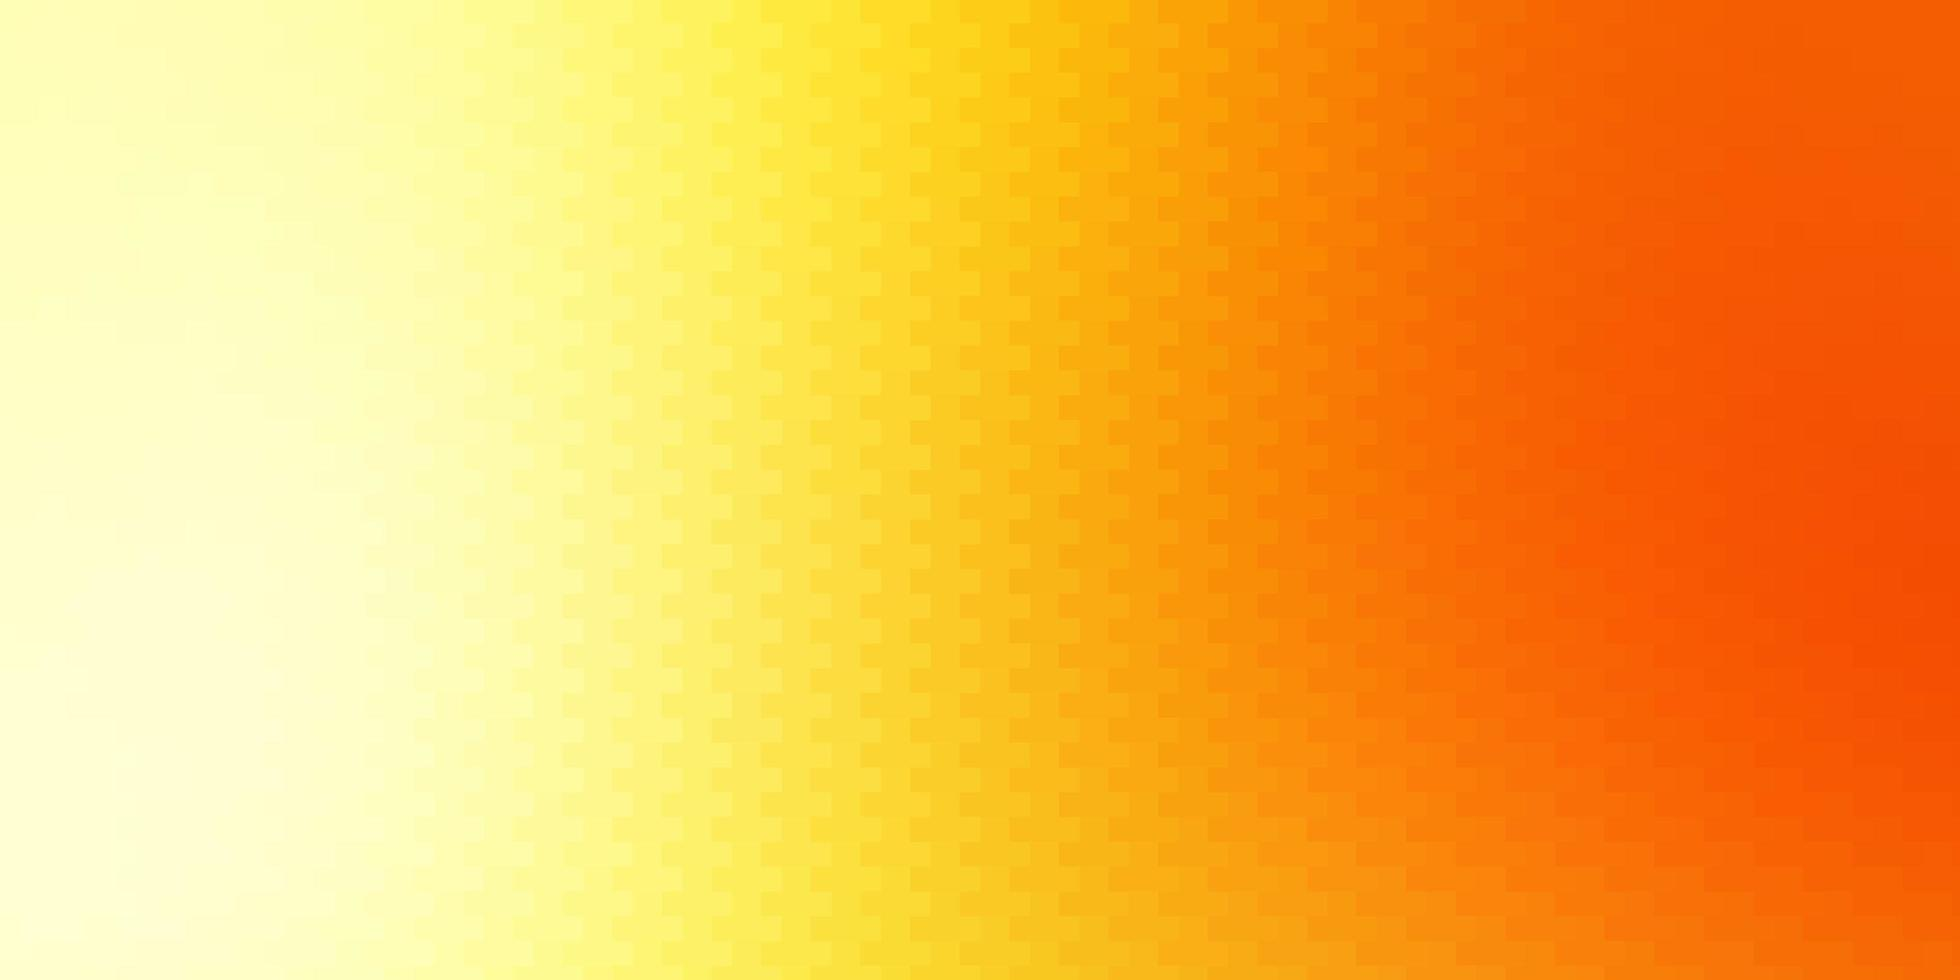 Light Red, Yellow vector background with rectangles.